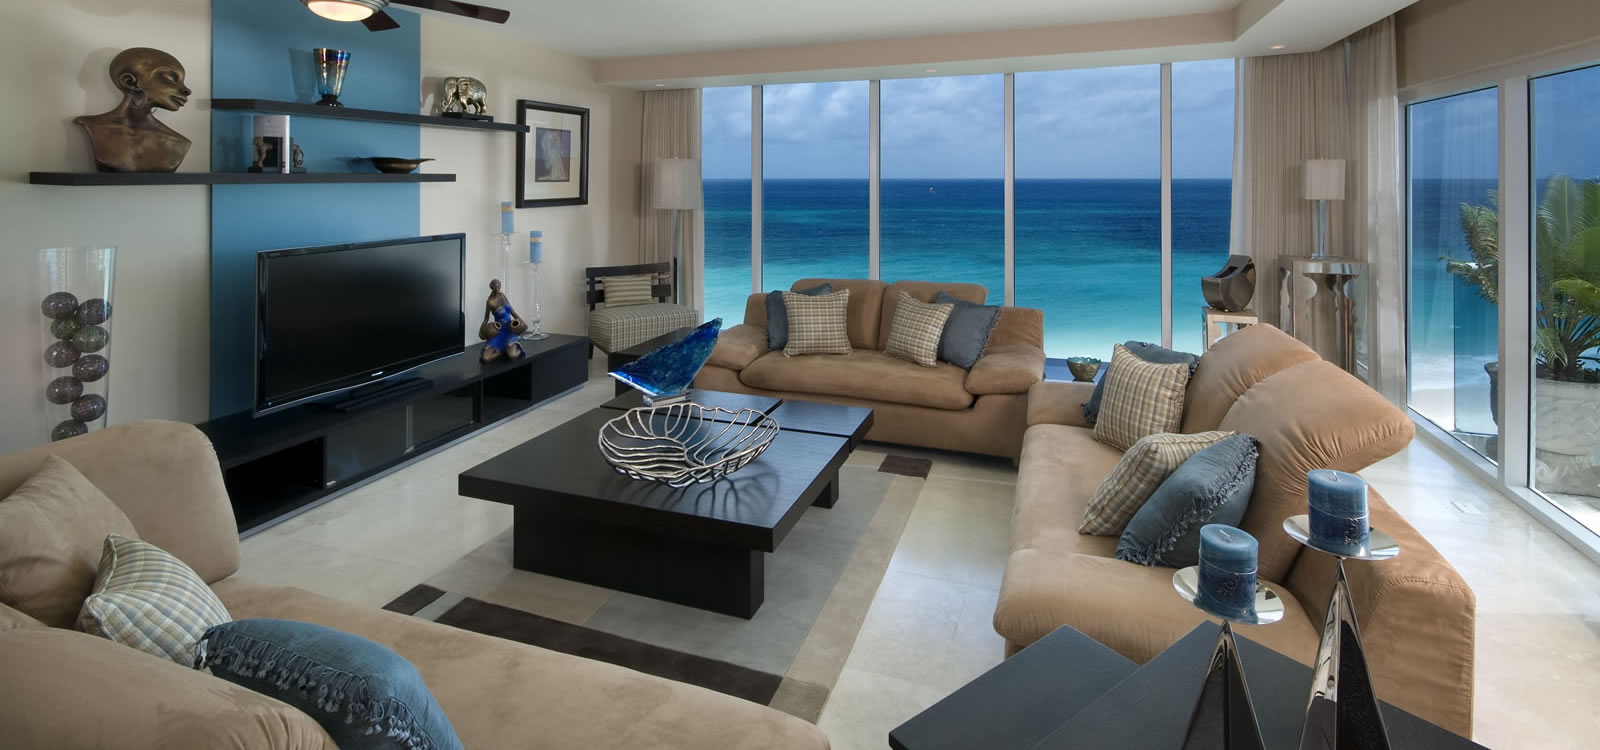 3 Bedroom Luxury Penthouse Apartment For Sale Christ